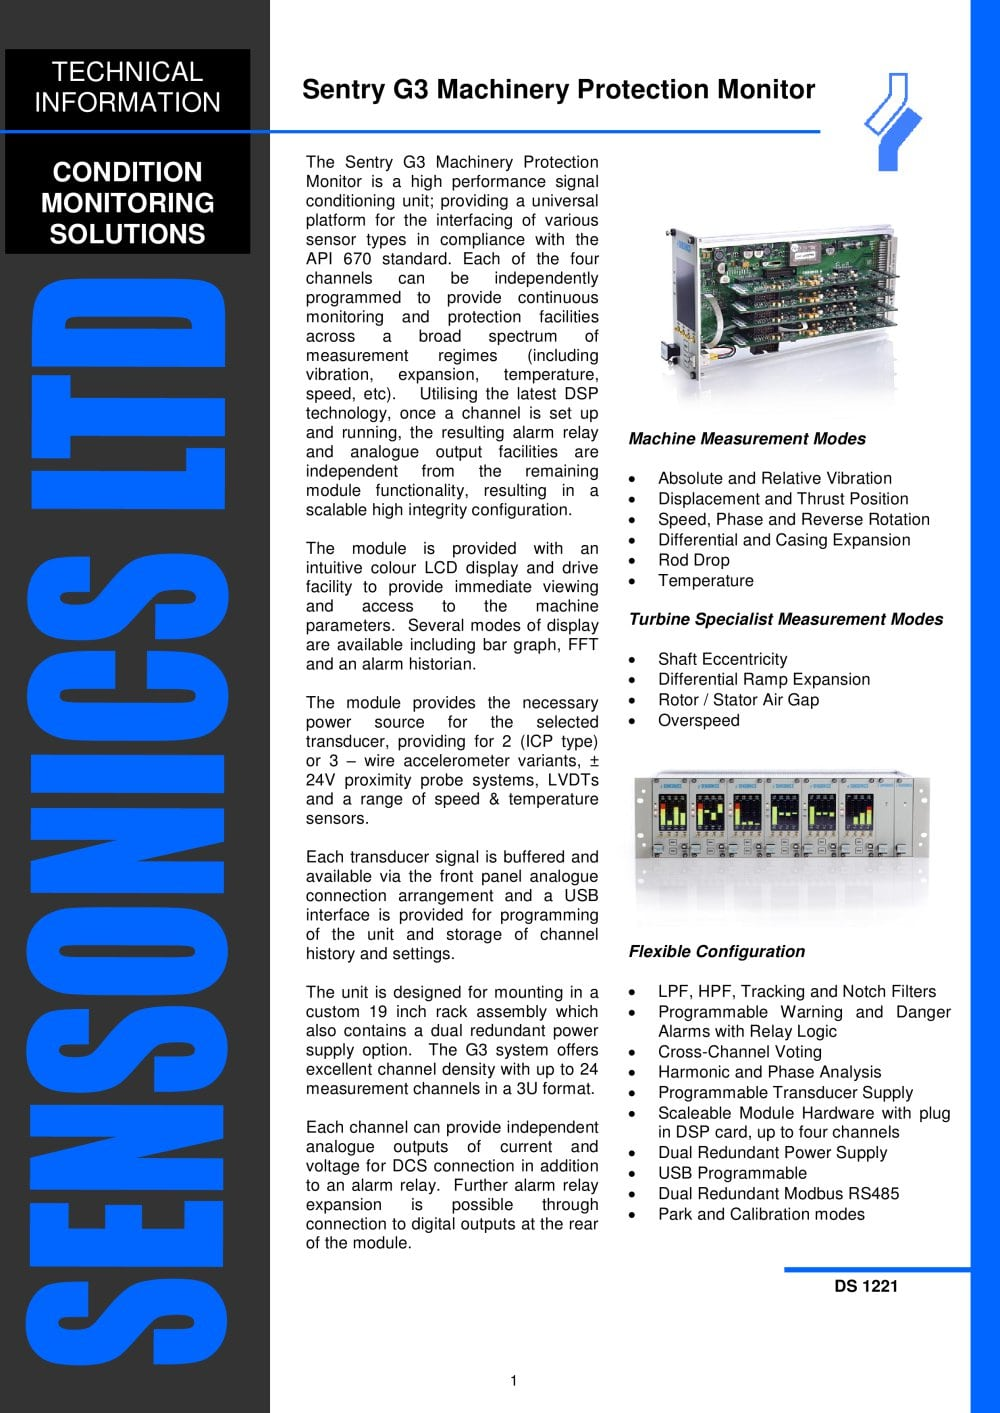 Sentry G3 Universal Machinery Protection Monitor Sensonics Pdf Current Alarm Relay 1 7 Pages